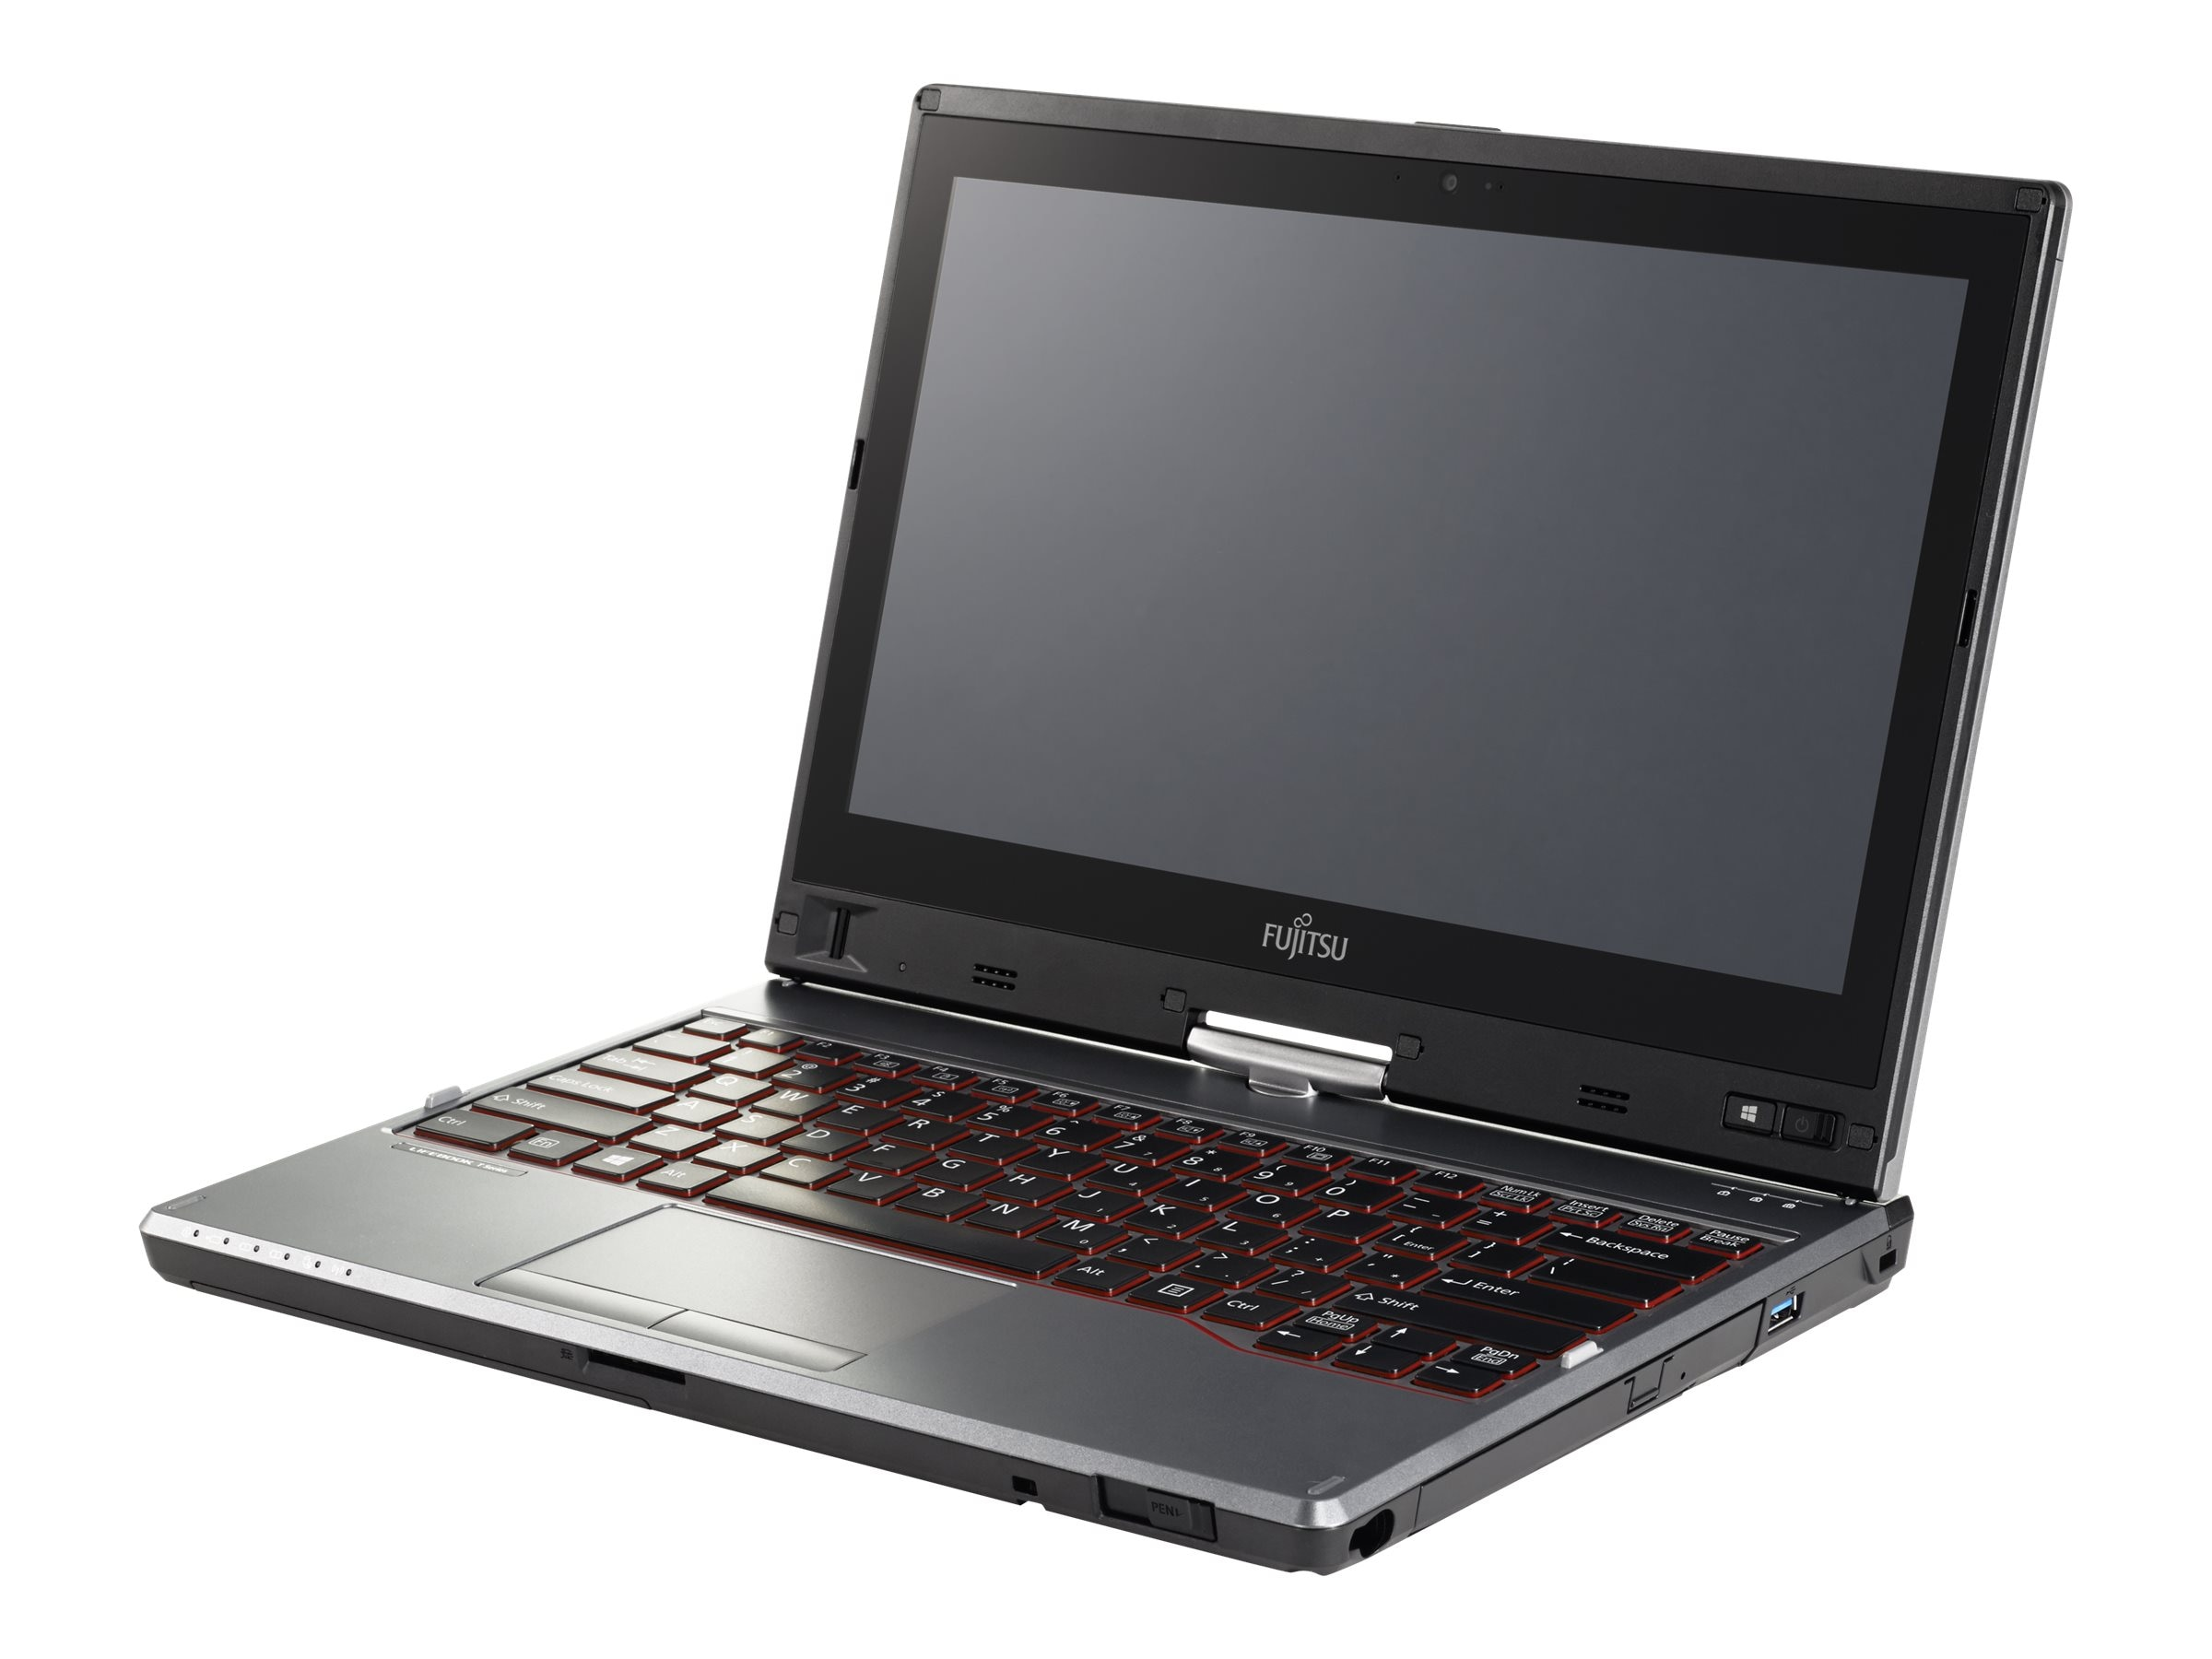 Fujitsu X-BUY LifeBook T725 Core i5-5200U 2.2GHz 8GB 128GB ac abgn BT FR WC 6C Pen 12.5 HD MT W7P64-W8.1P64, XBUY-T725-003, 18473877, Notebooks - Convertible